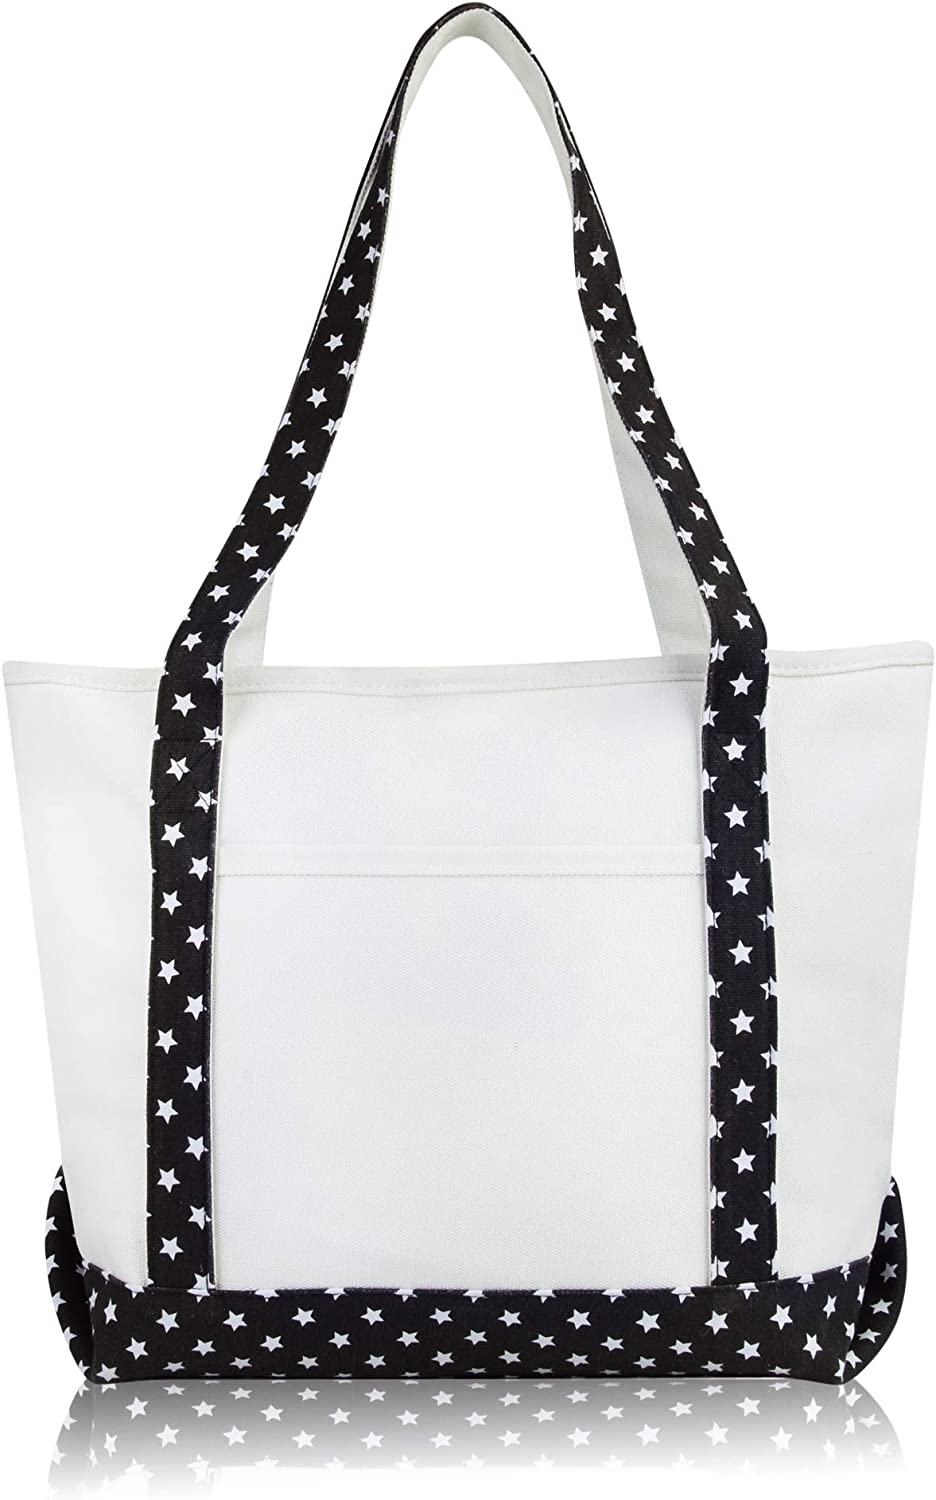 DALIX Daily Shoulder Tote Bag Premium Cotton in Black Star